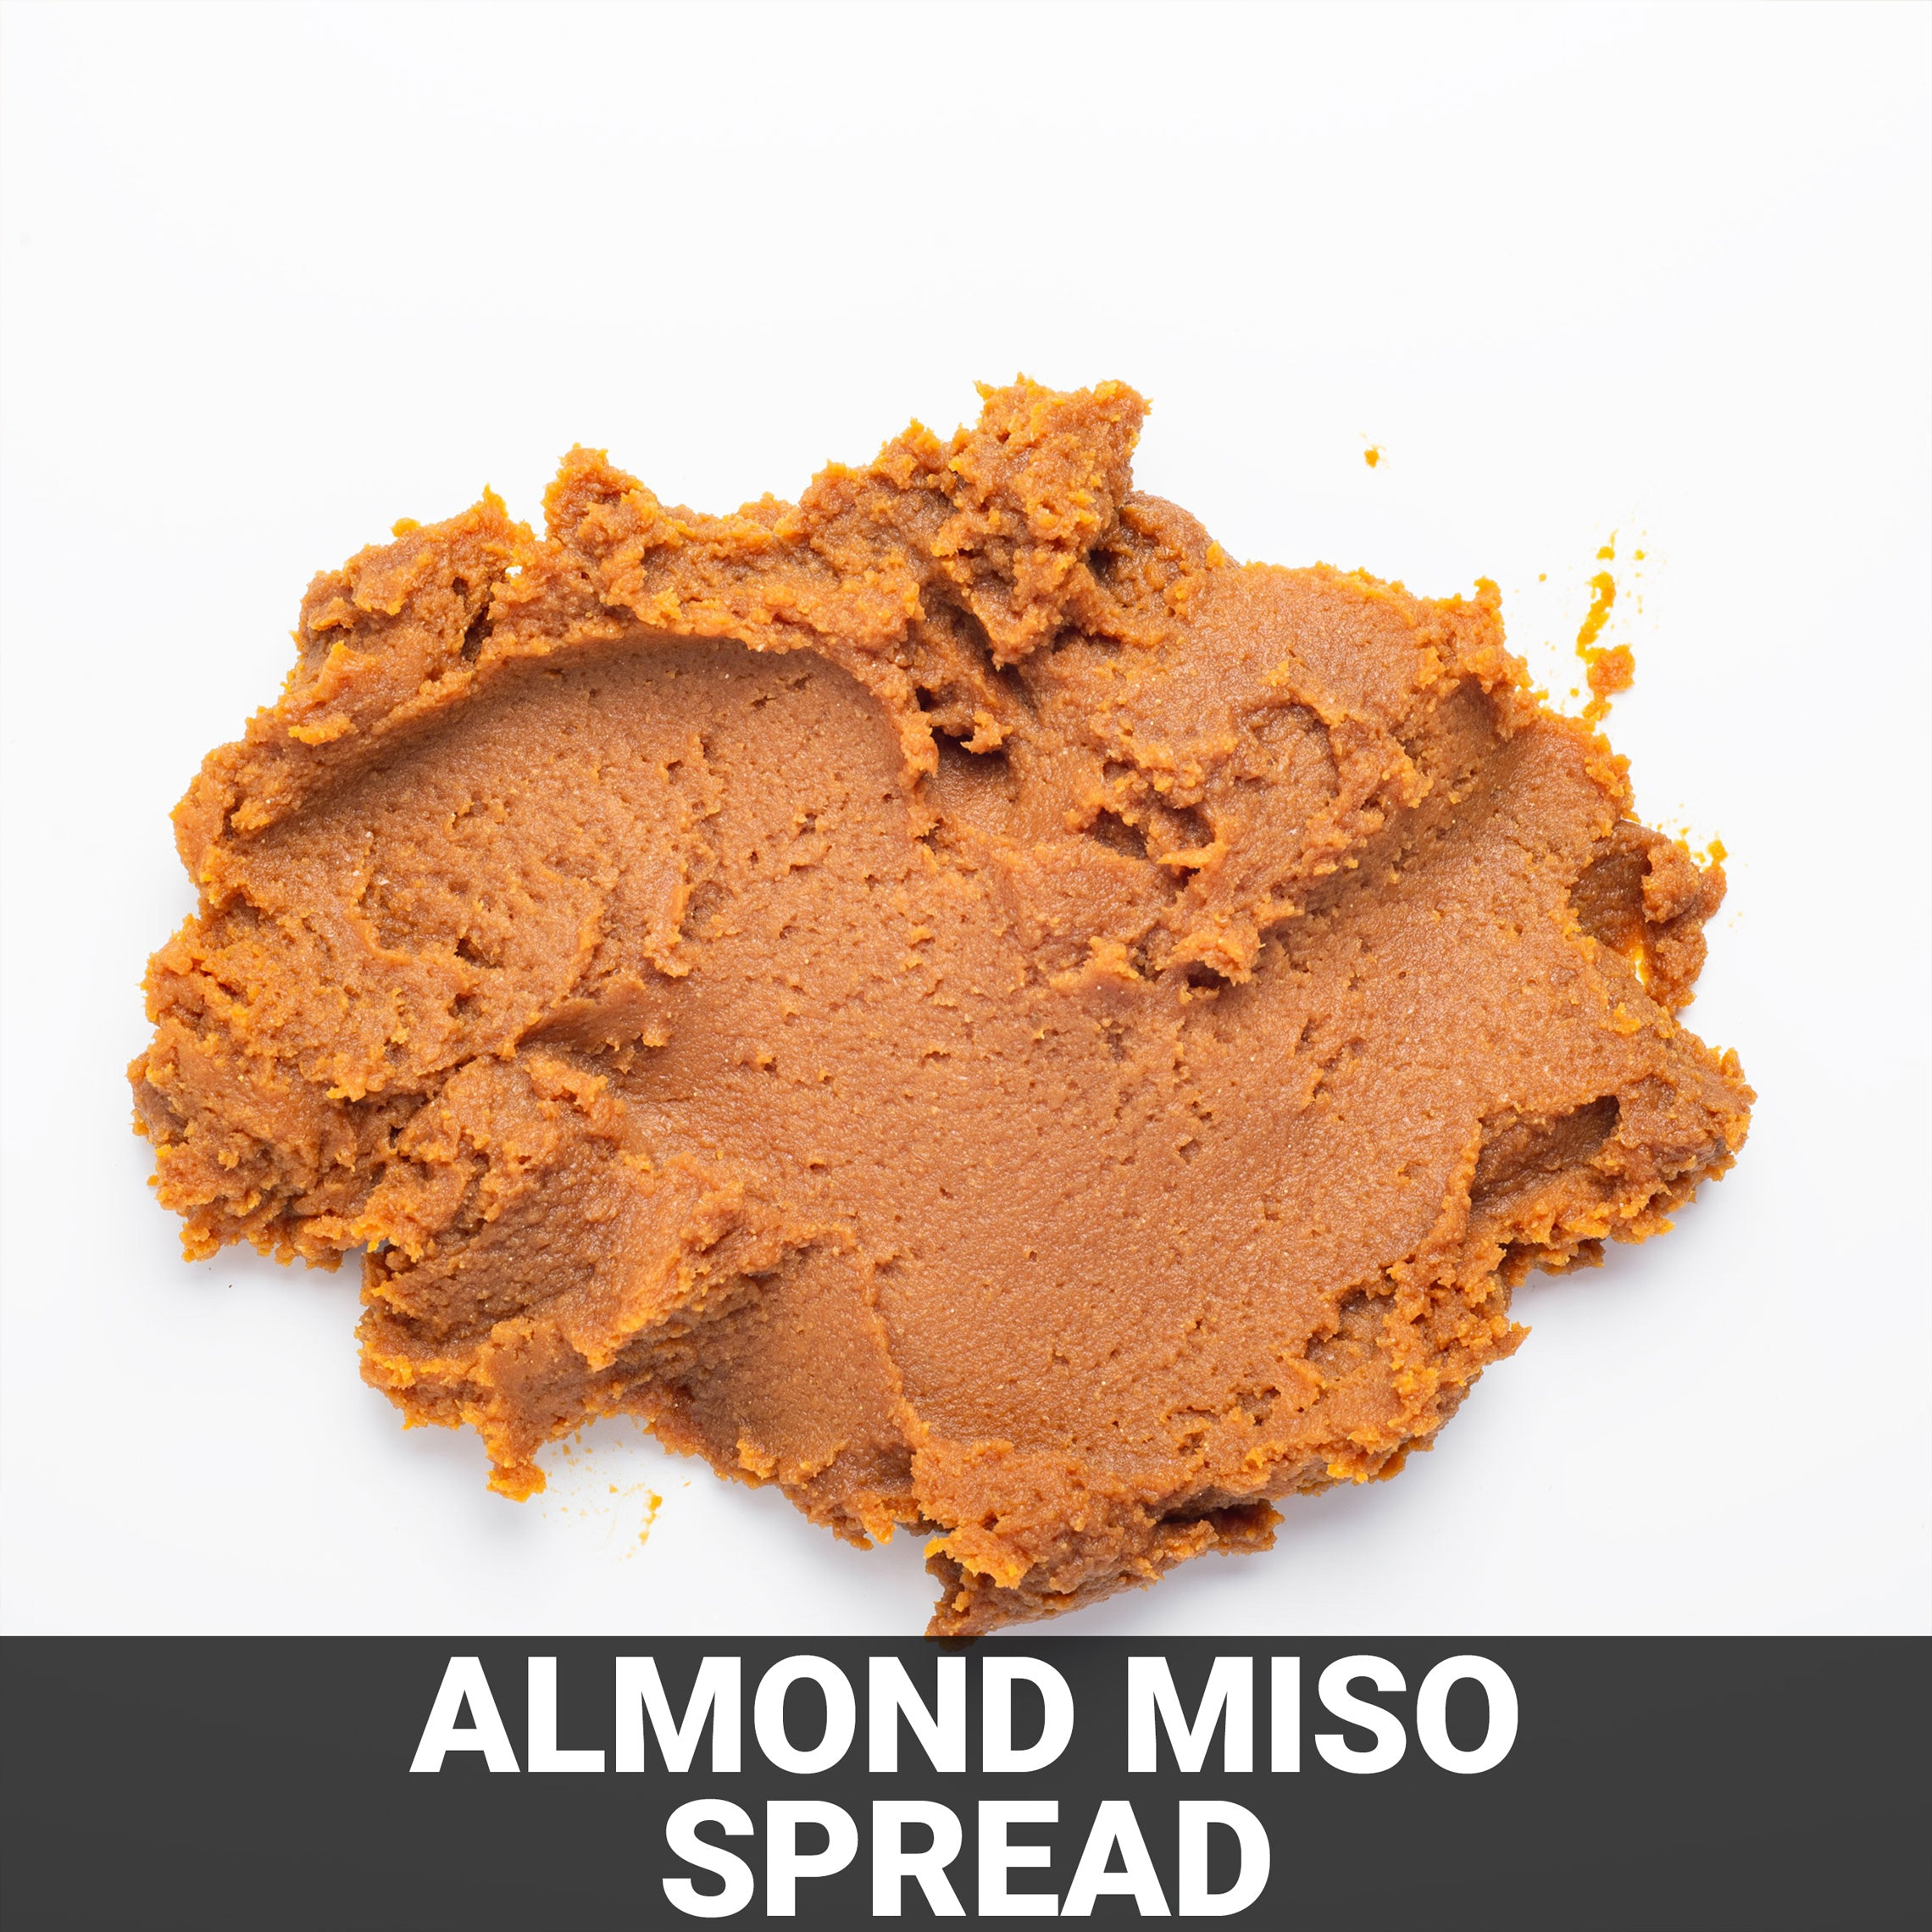 Almond Miso Spread Recipe - Foods Alive